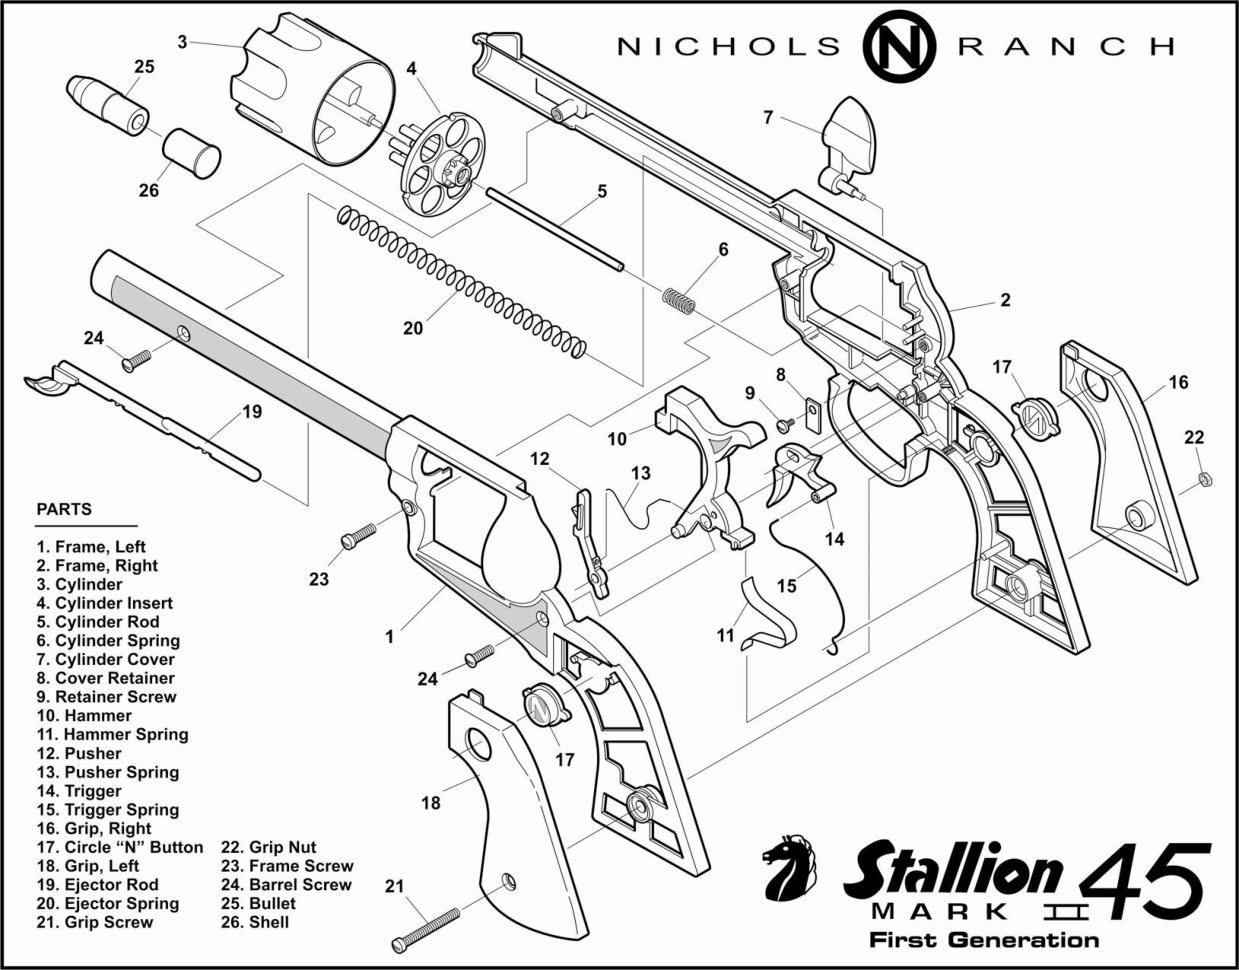 Needle Gun Schematics, Needle, Free Engine Image For User